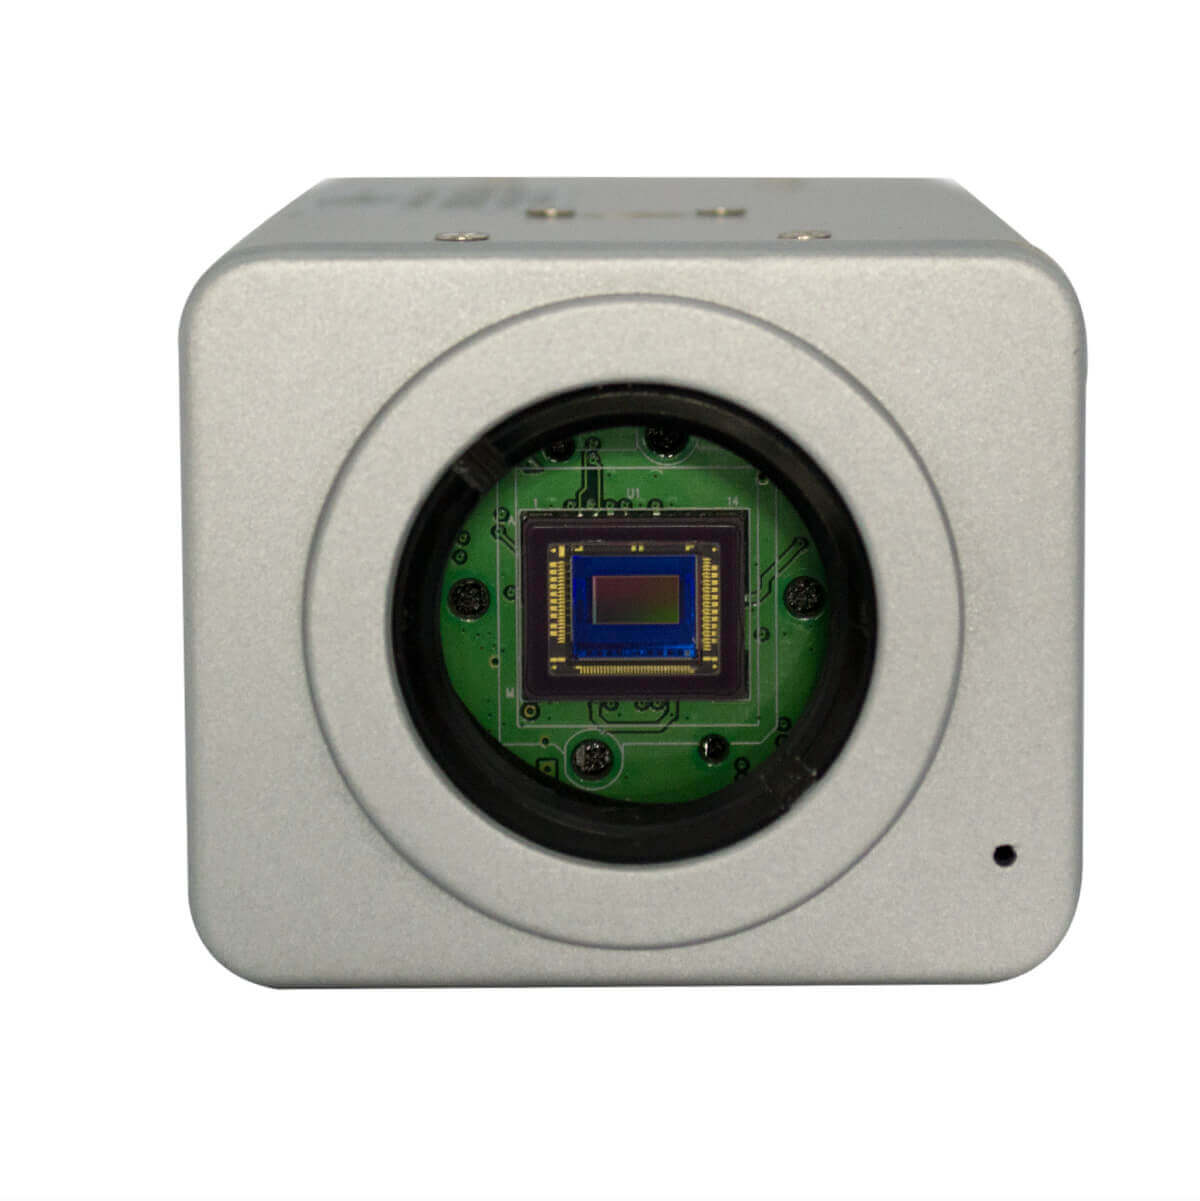 Camara tipo box antivandalica HD-SDI, 2.0 MP, 1/3 CMOS, 1080p, Menu OSD, Deteccion Inteligente.